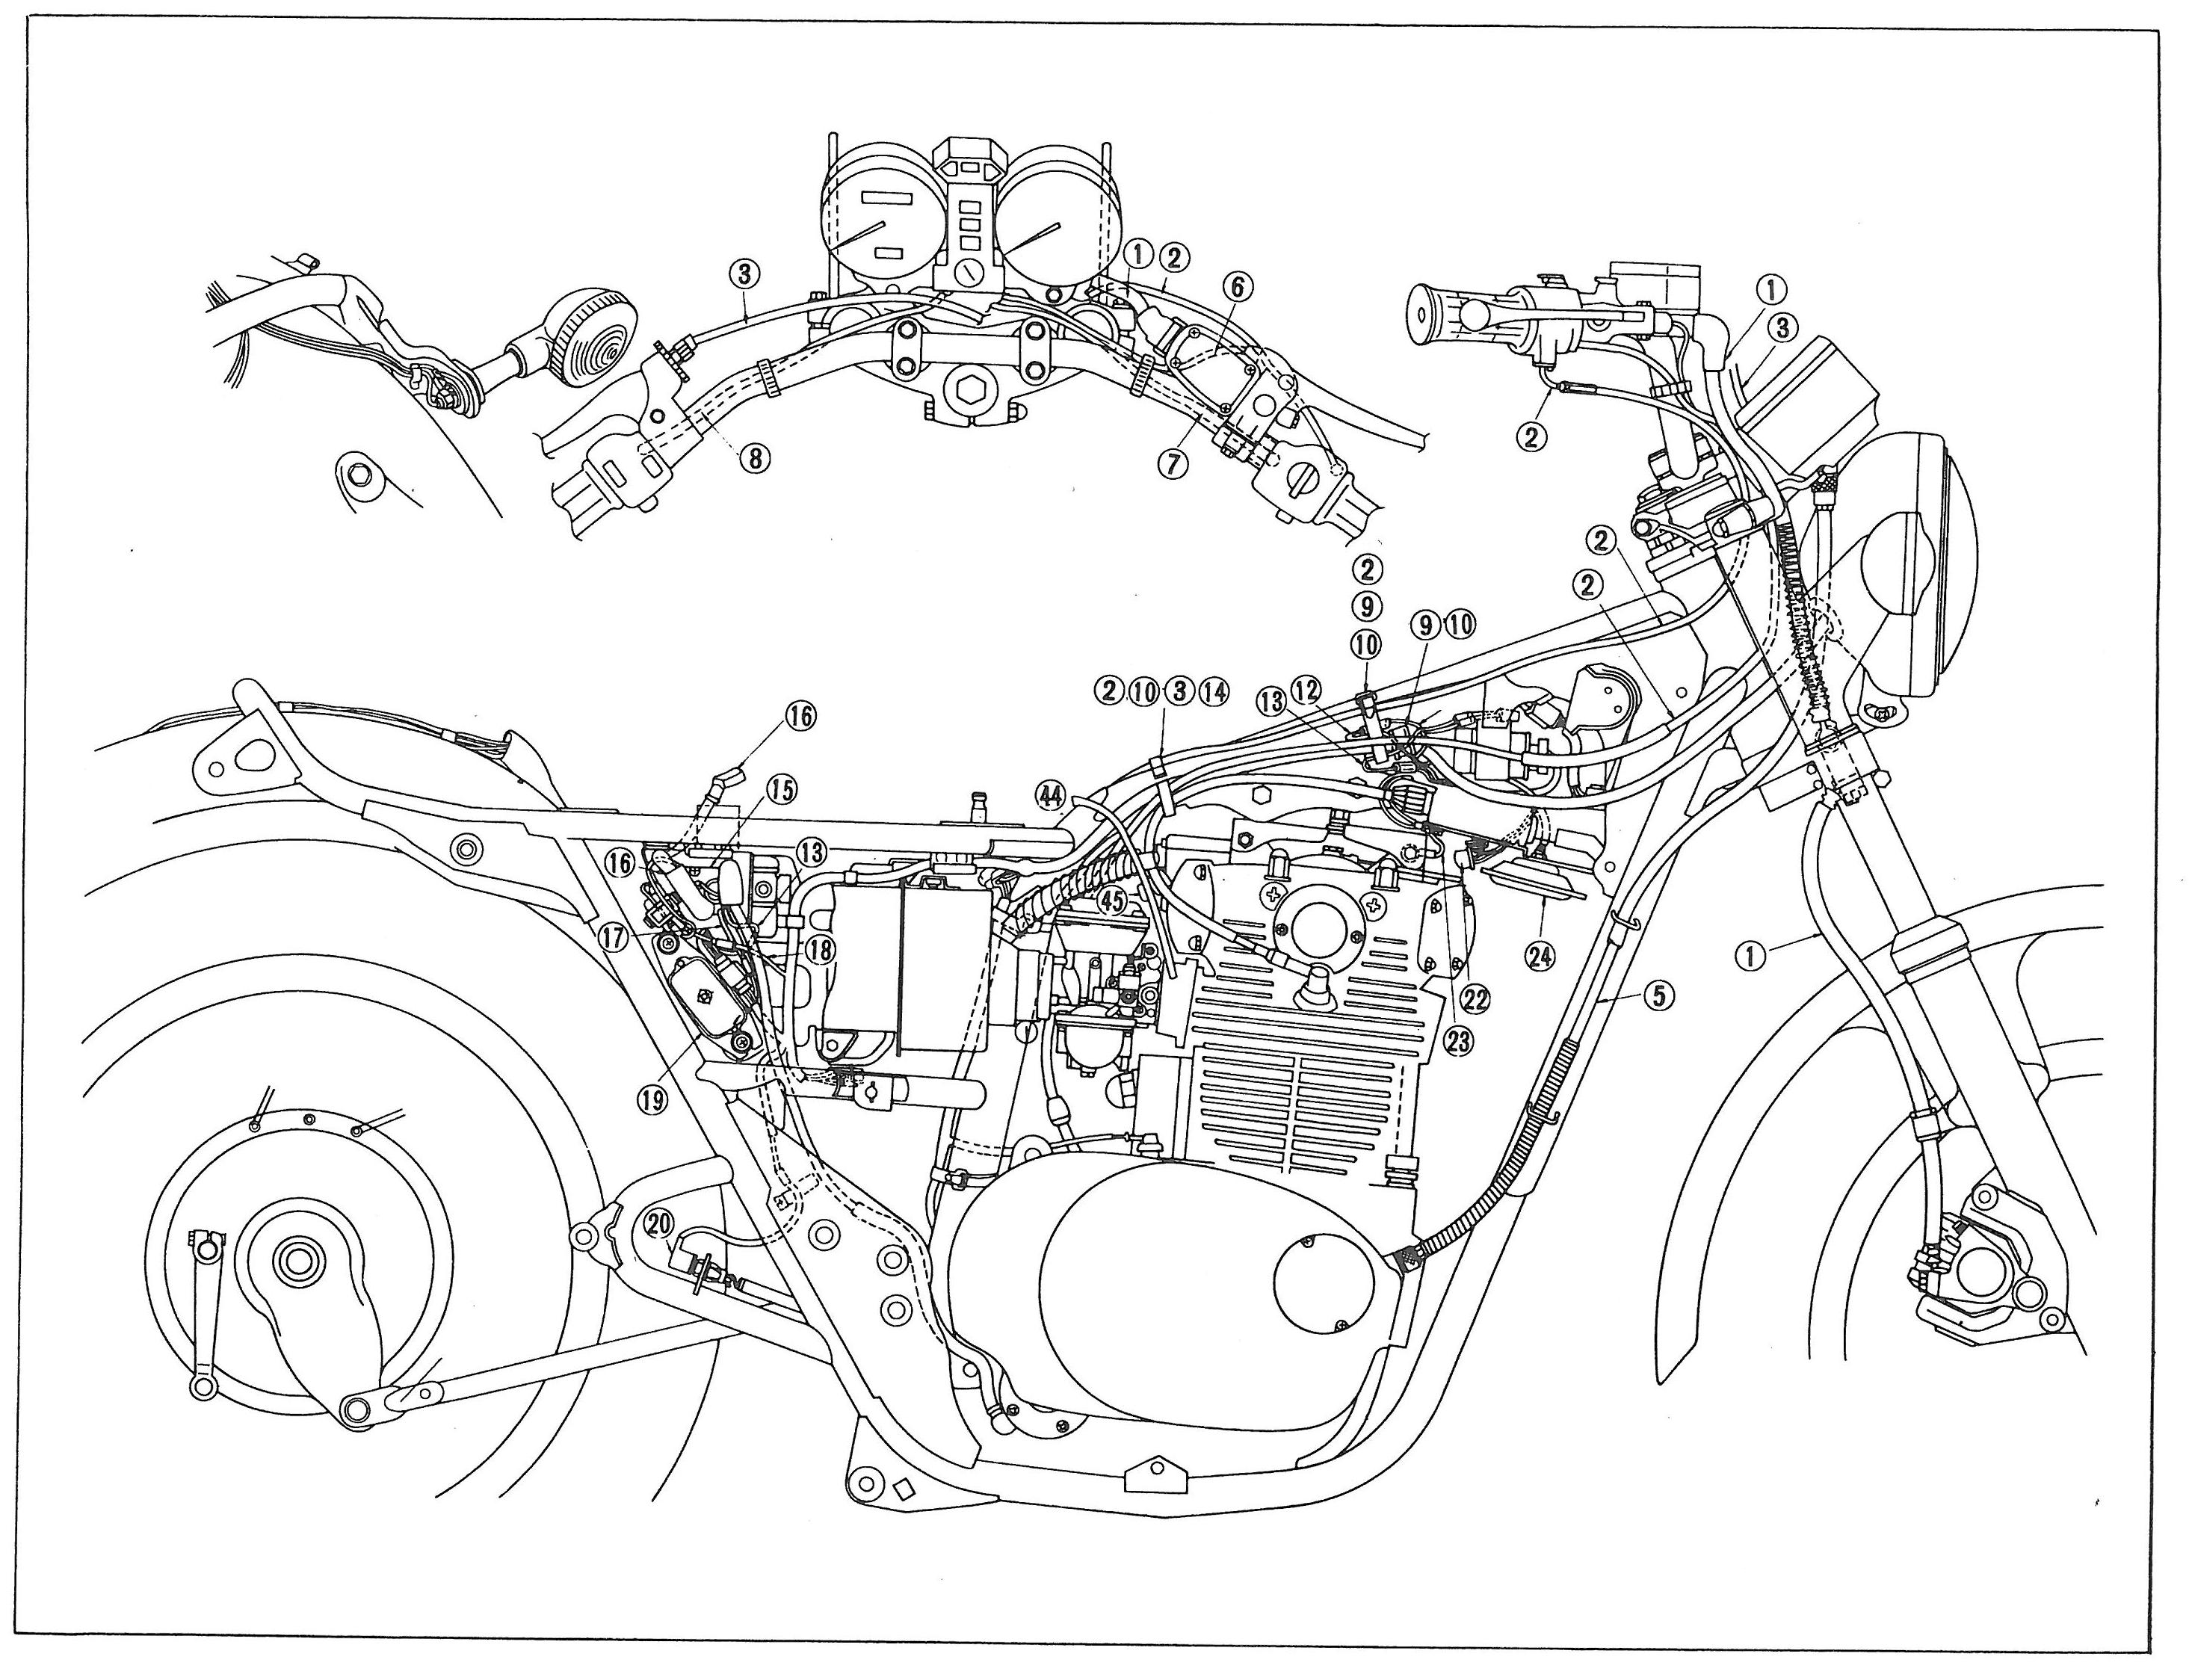 hight resolution of 1981 xs650 engine diagram wiring diagram used 1981 xs650 engine diagram